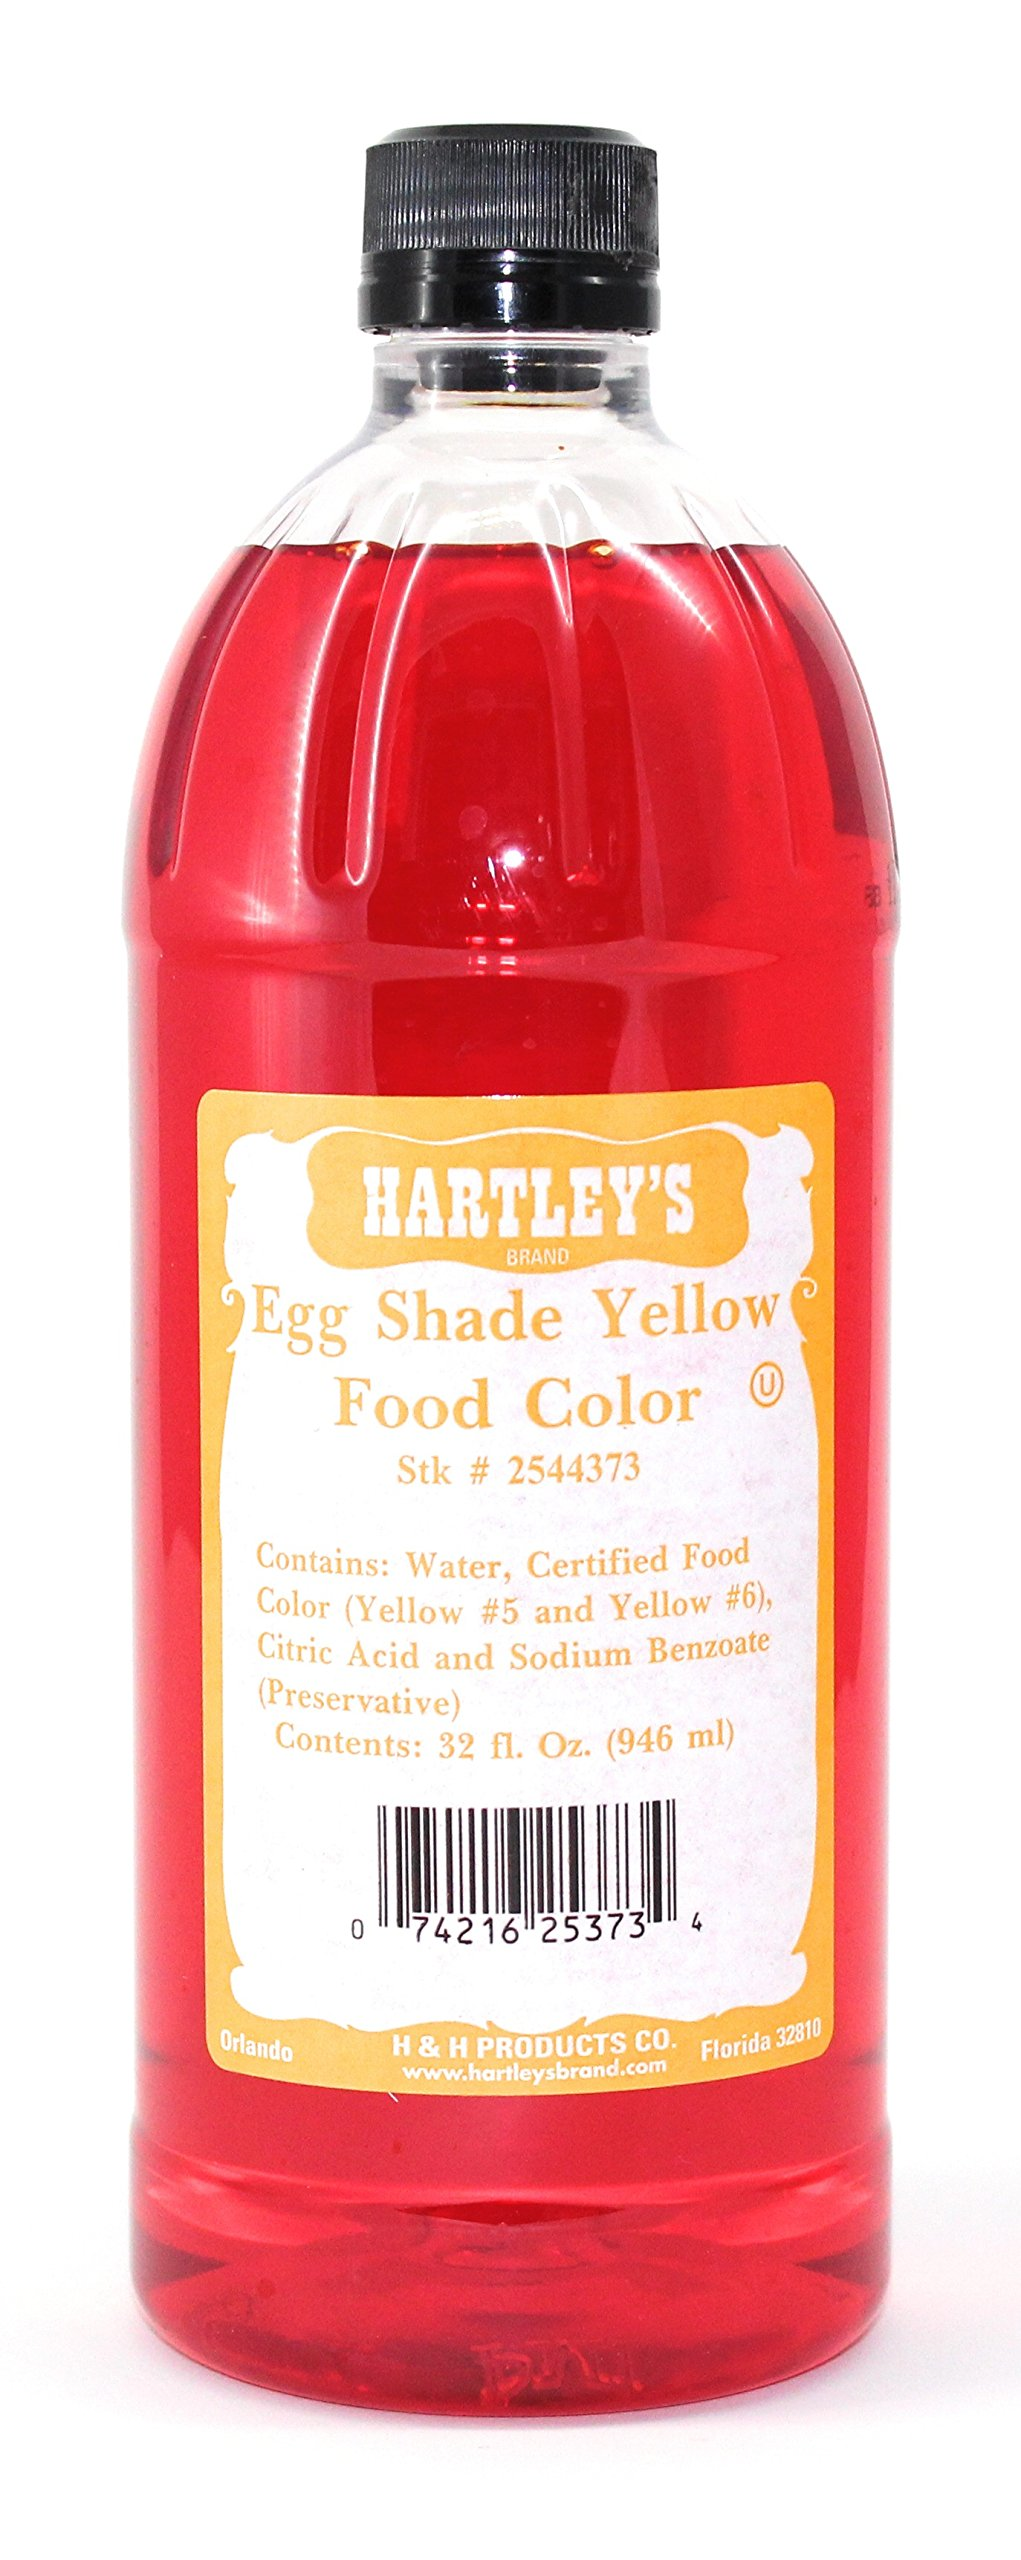 Hartleys Yellow Food Coloring Commercial Grade Professional Kitchen Egg Shade Yellow Culinary Liquid Color 32 Oz ✡ OU Kosher